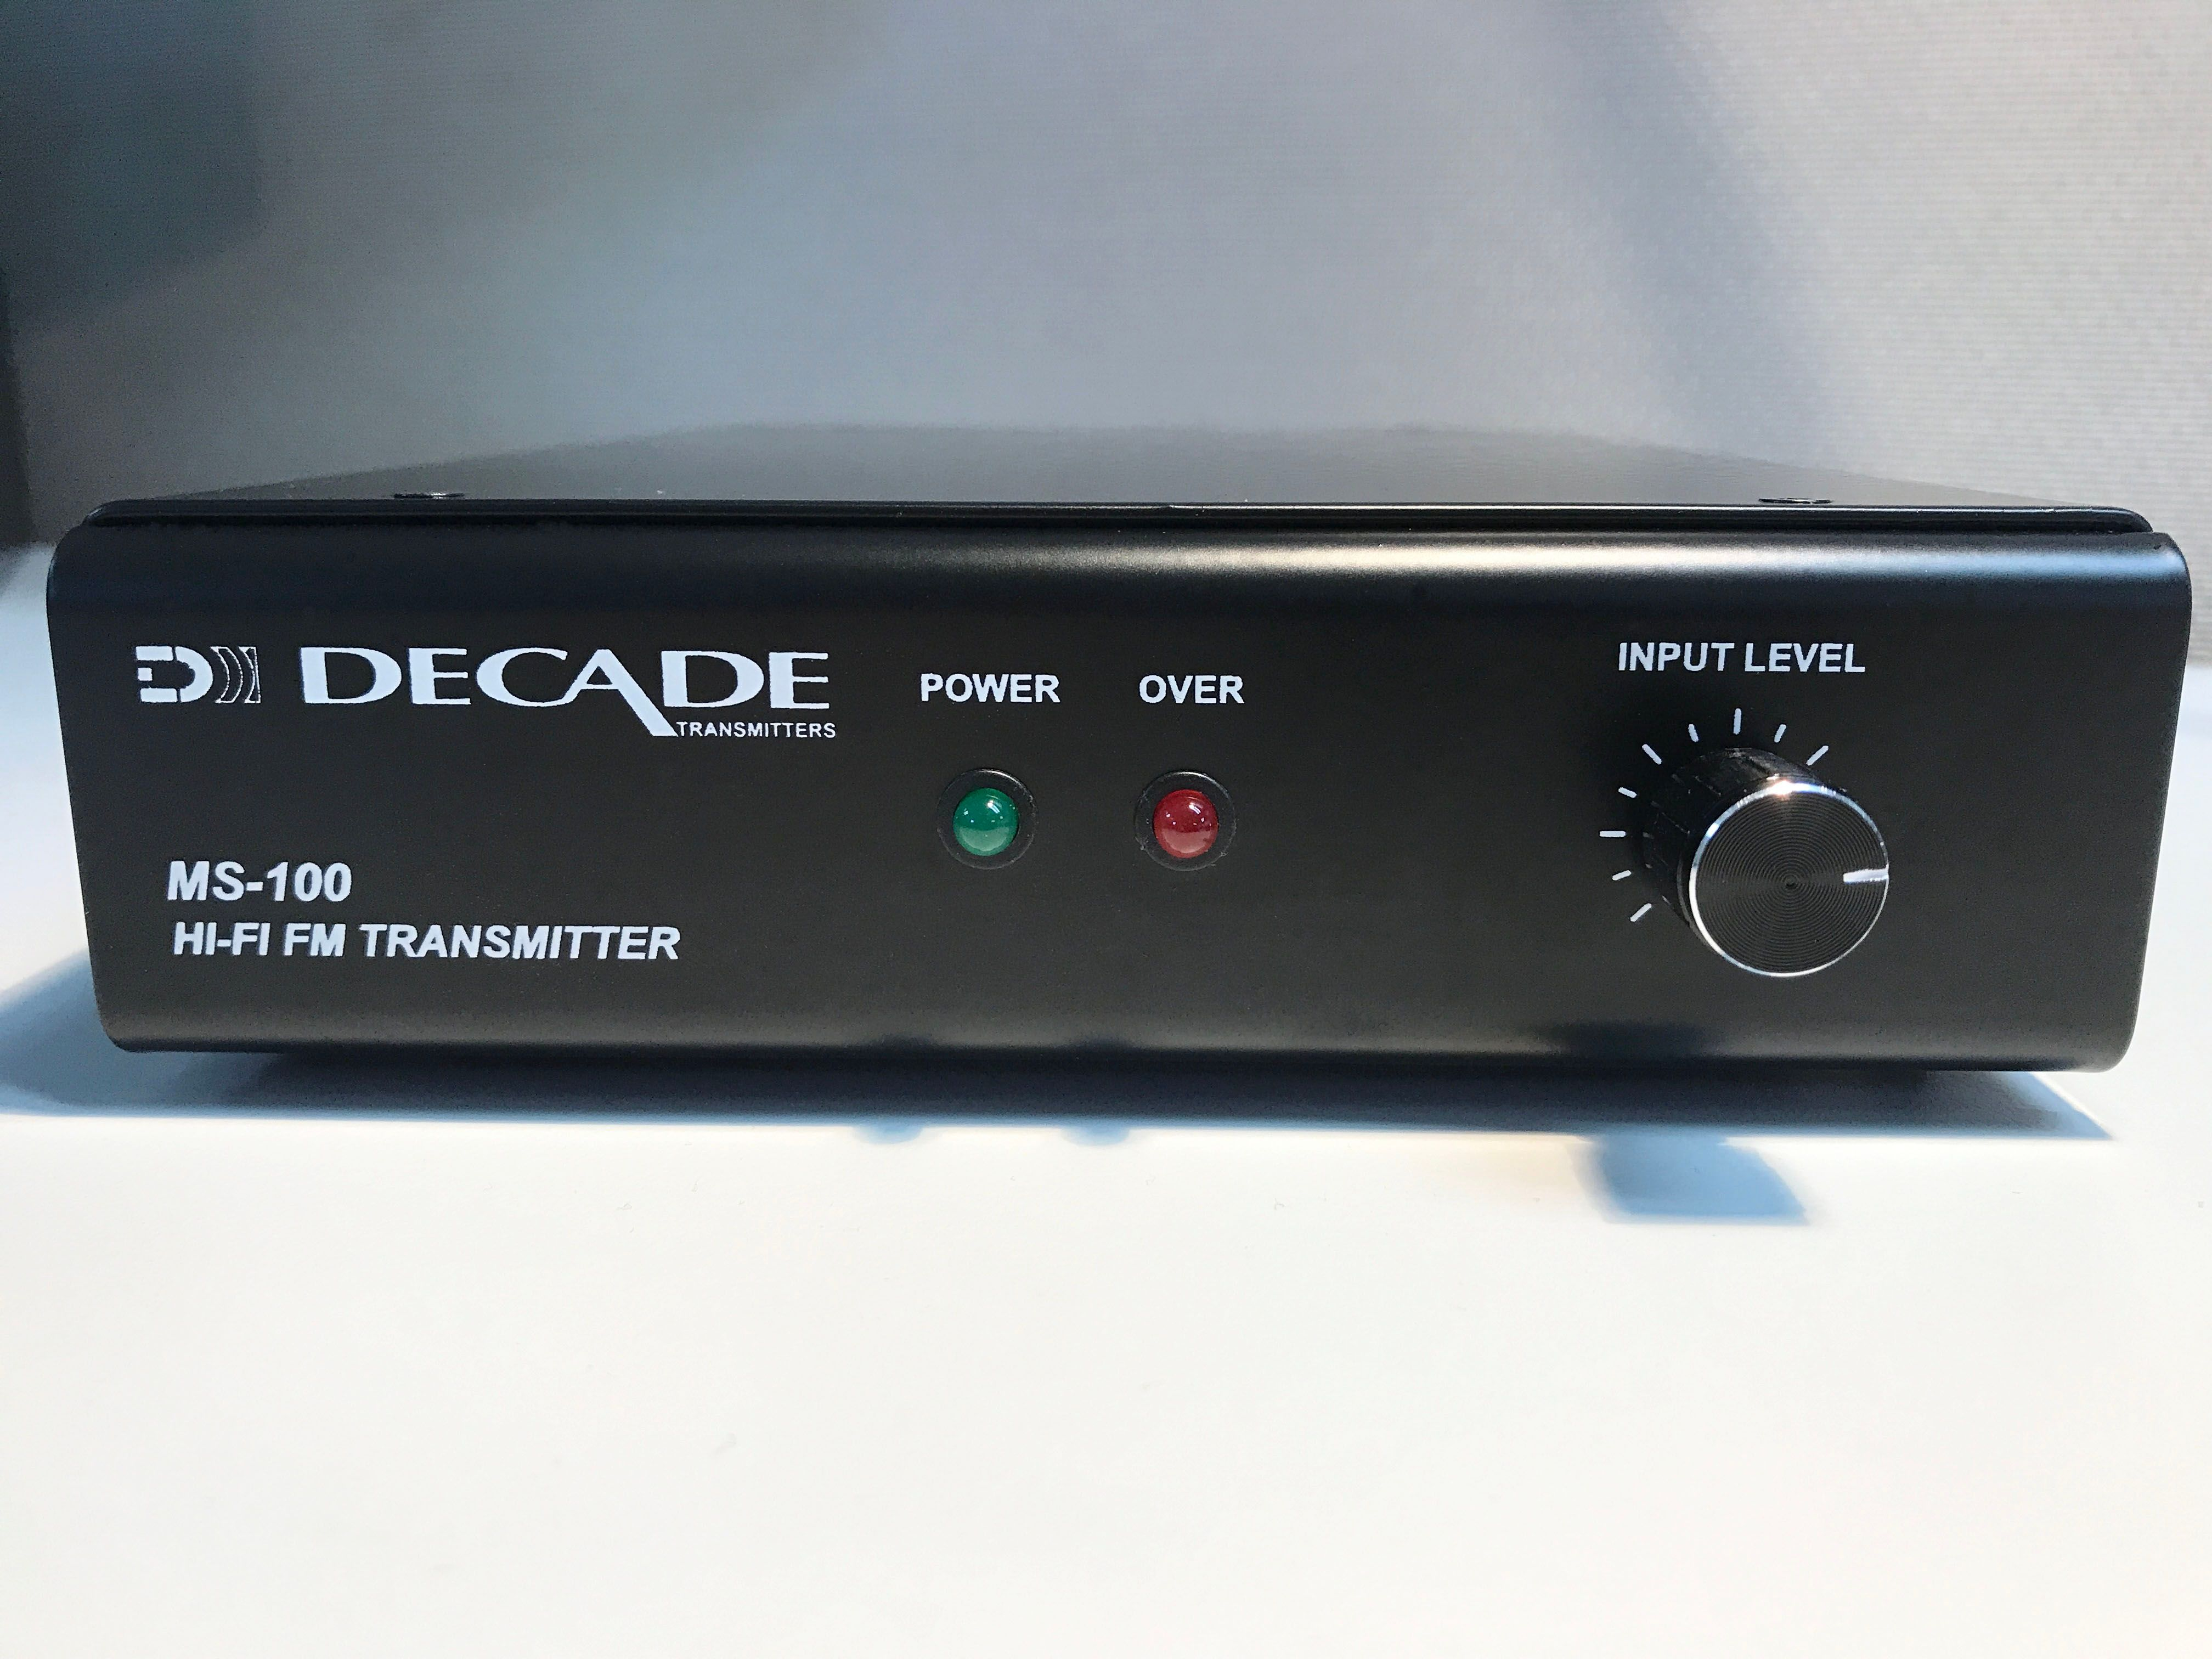 Decade MS-100 FM Transmitter is at Hollywood Sound Systems